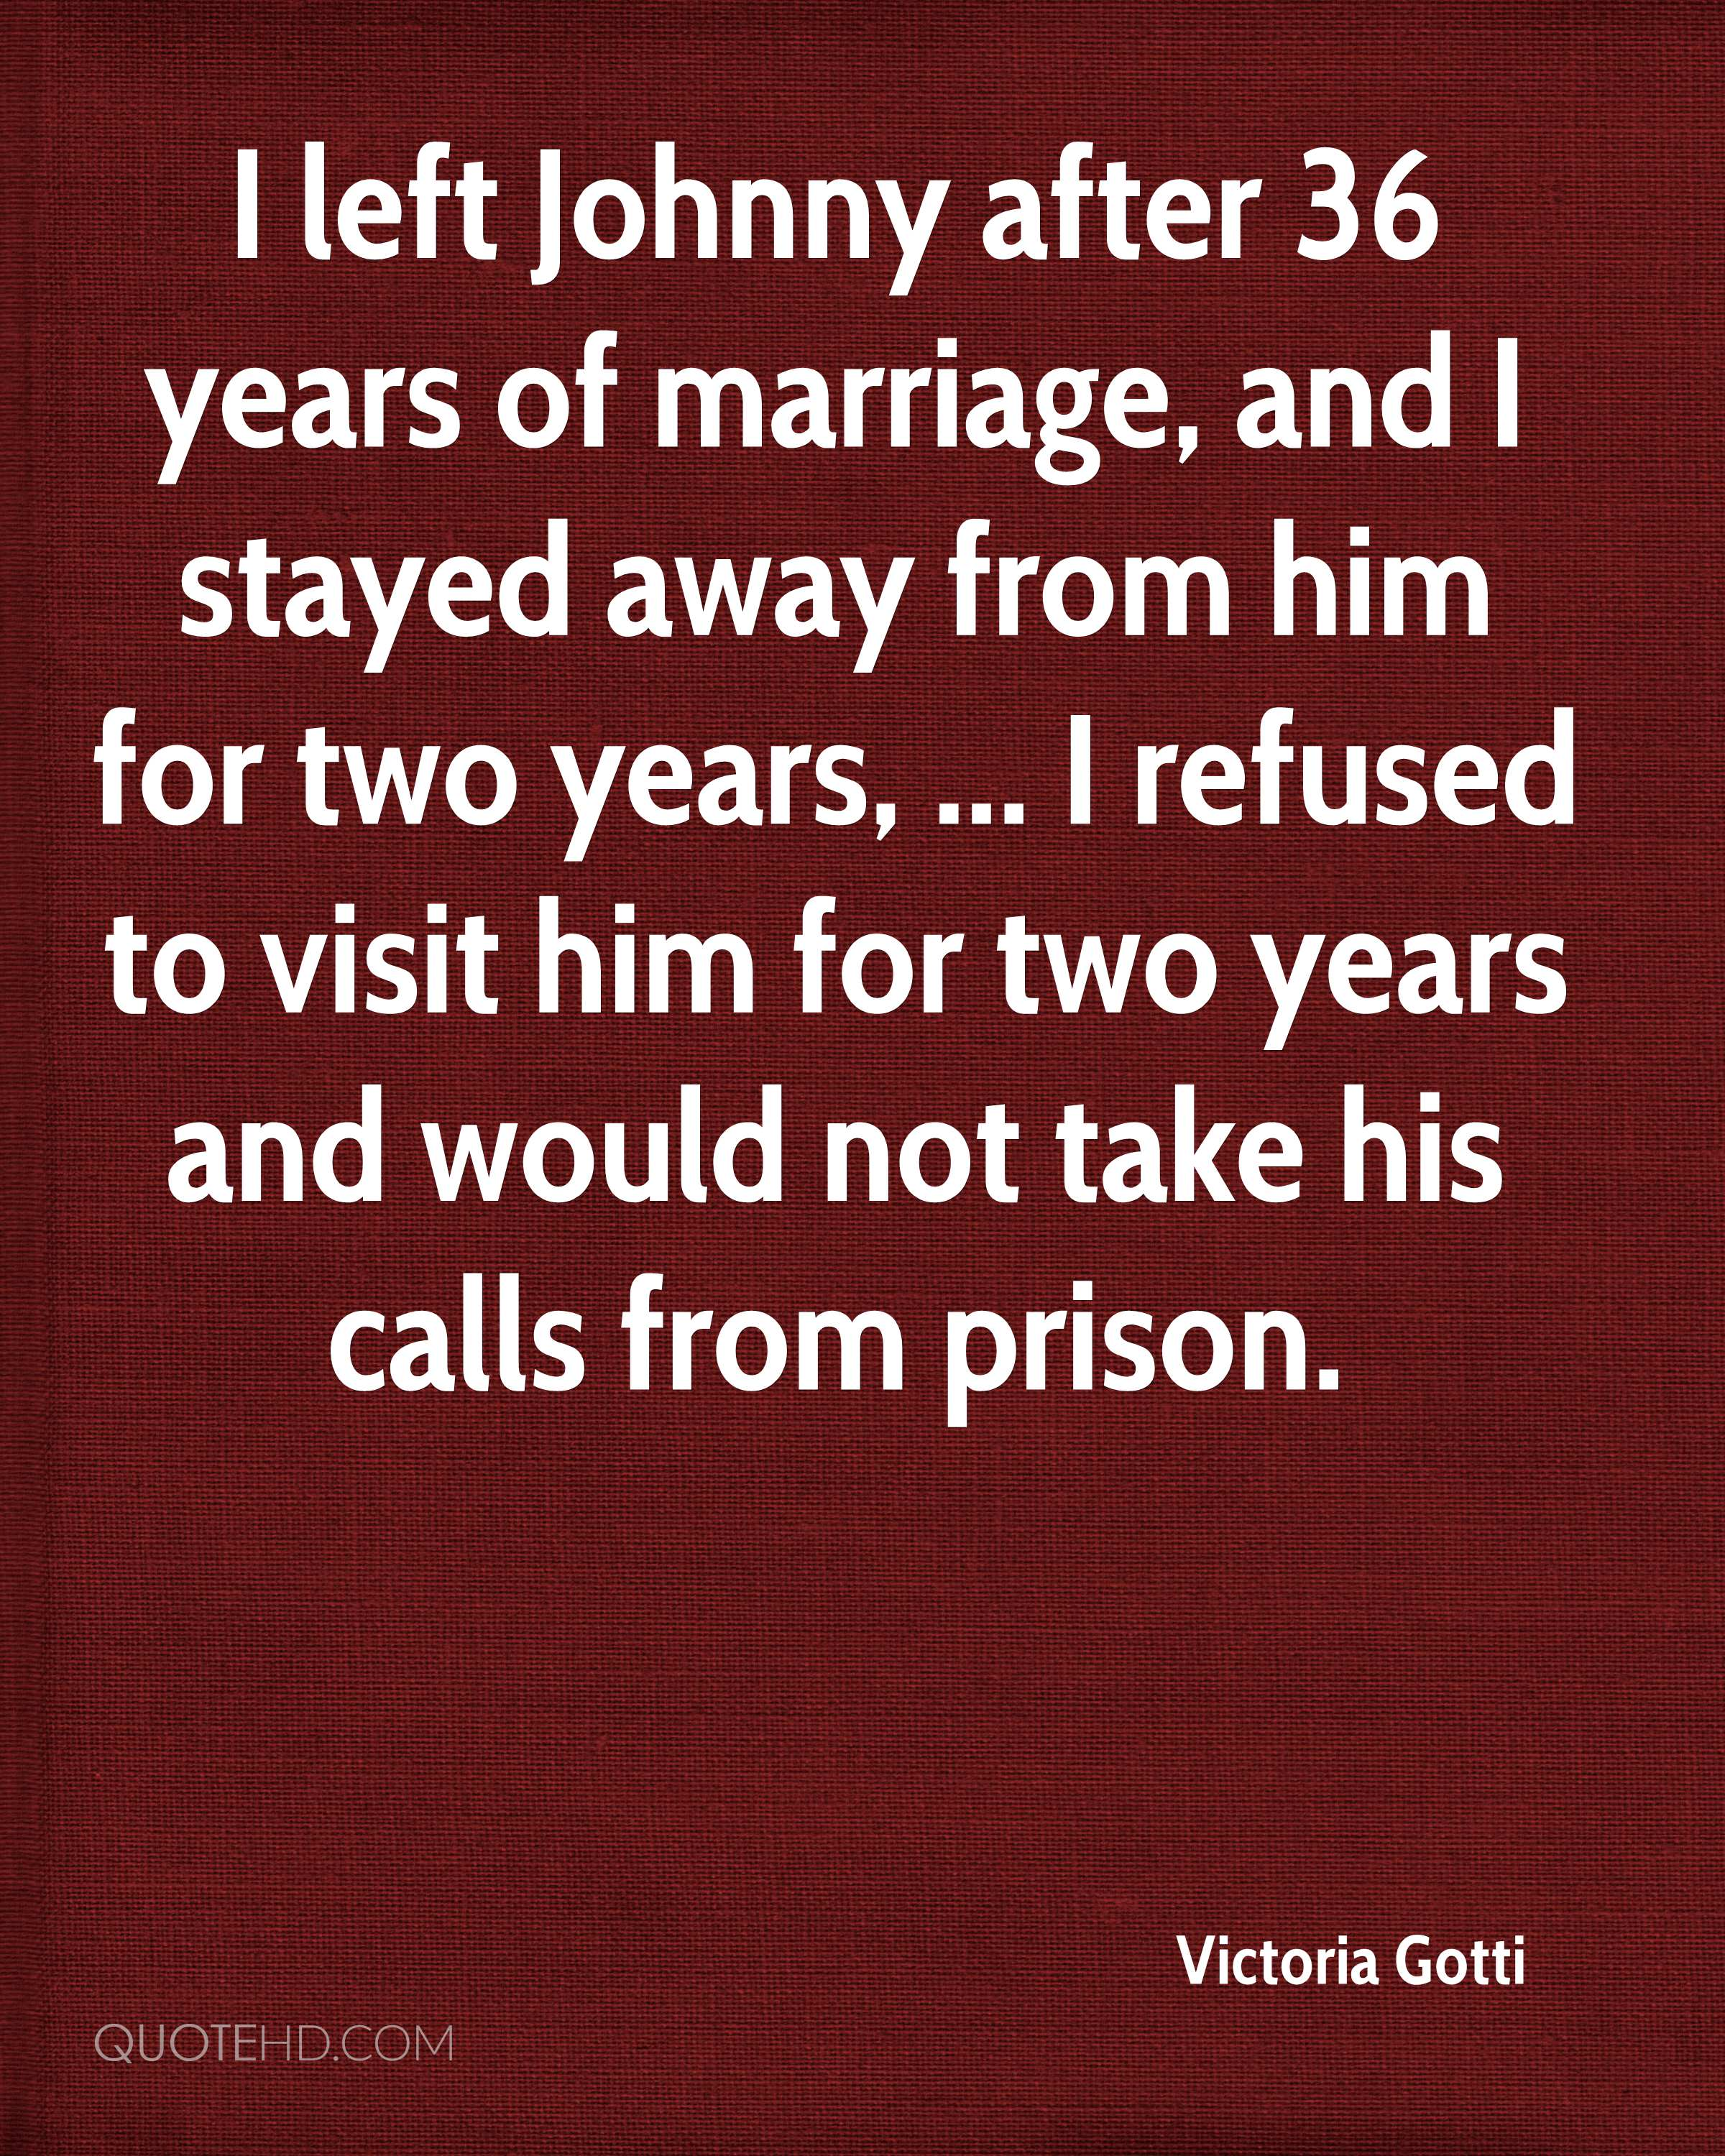 I left Johnny after 36 years of marriage, and I stayed away from him for two years, ... I refused to visit him for two years and would not take his calls from prison.